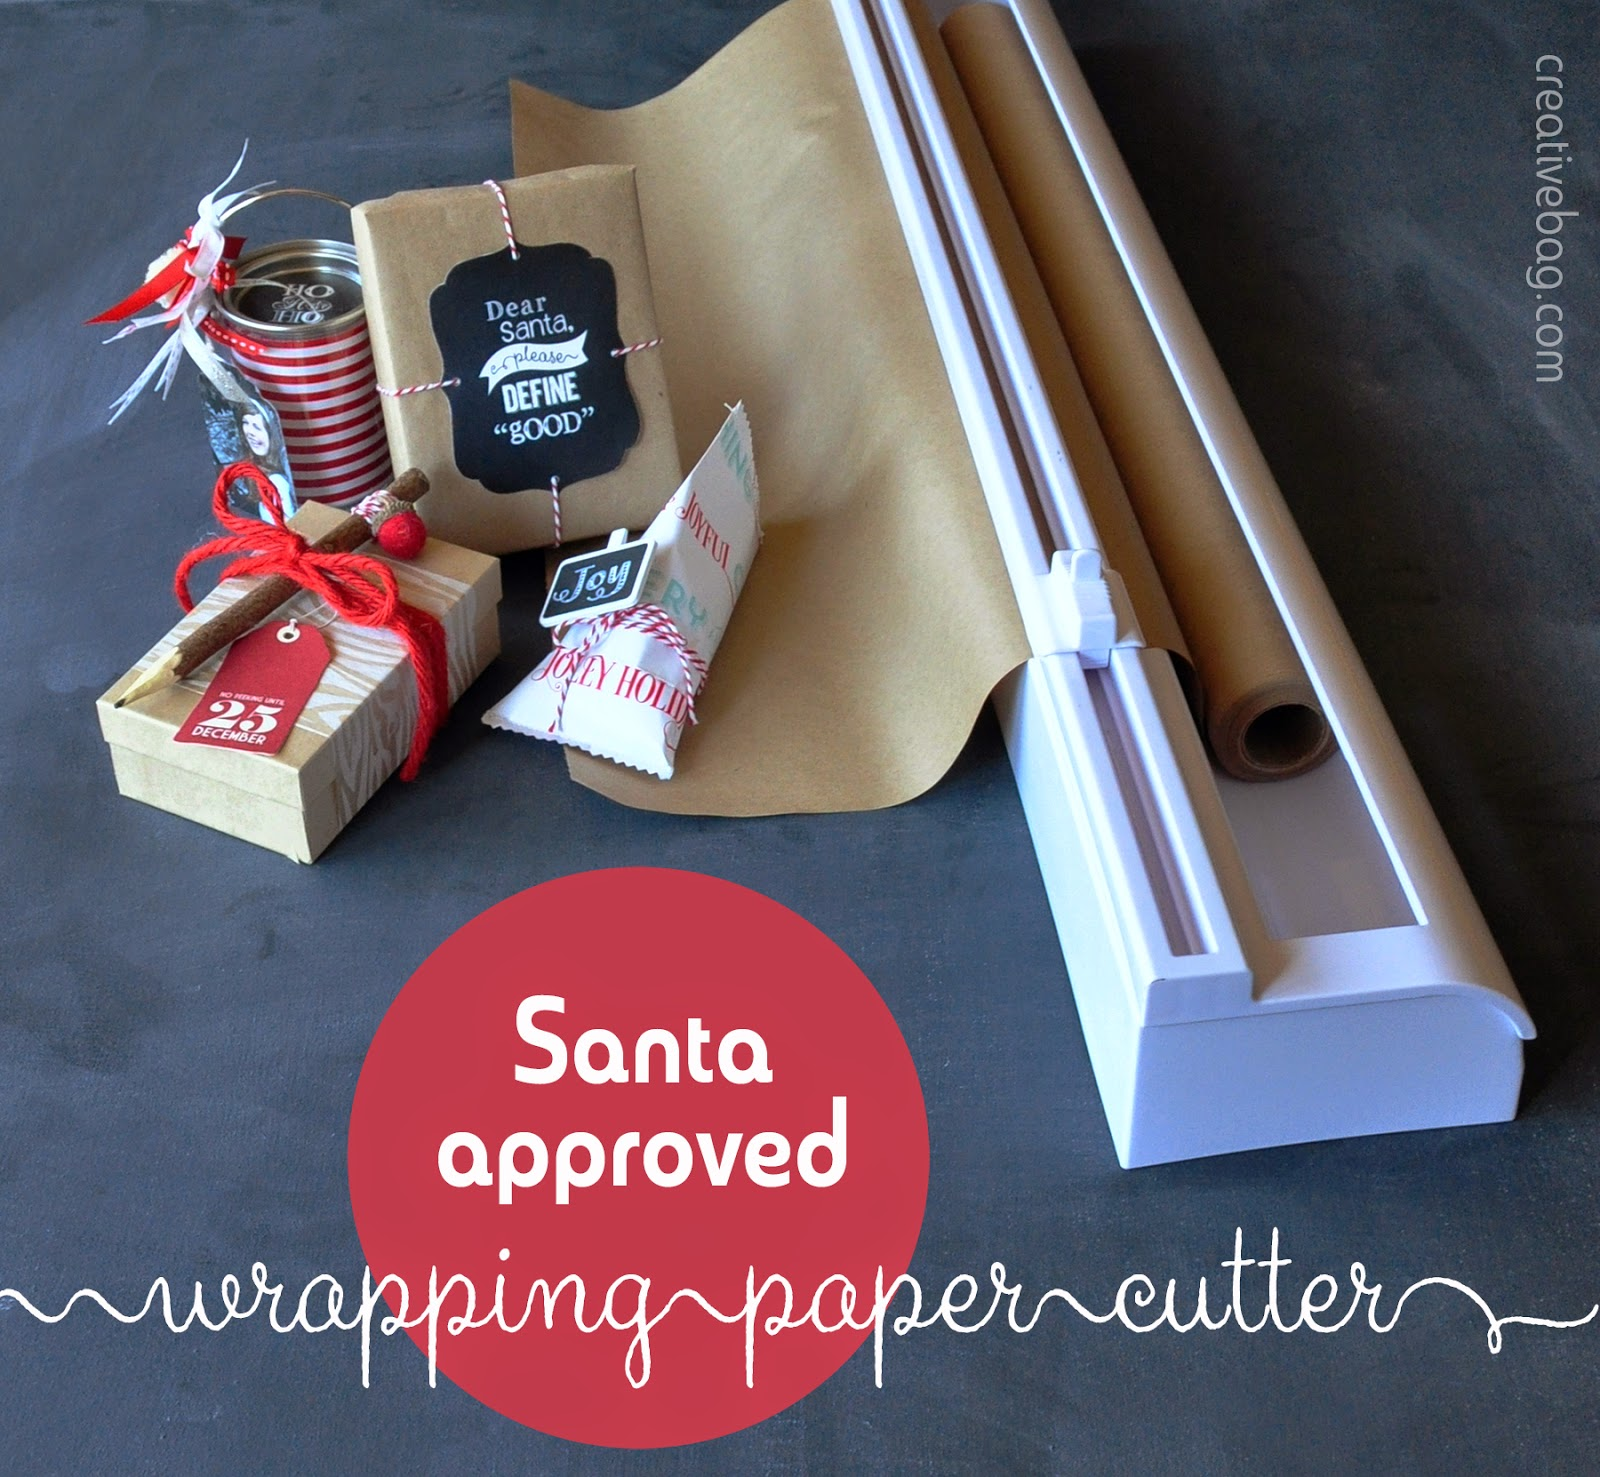 wrapping paper cutter | Creative Bag